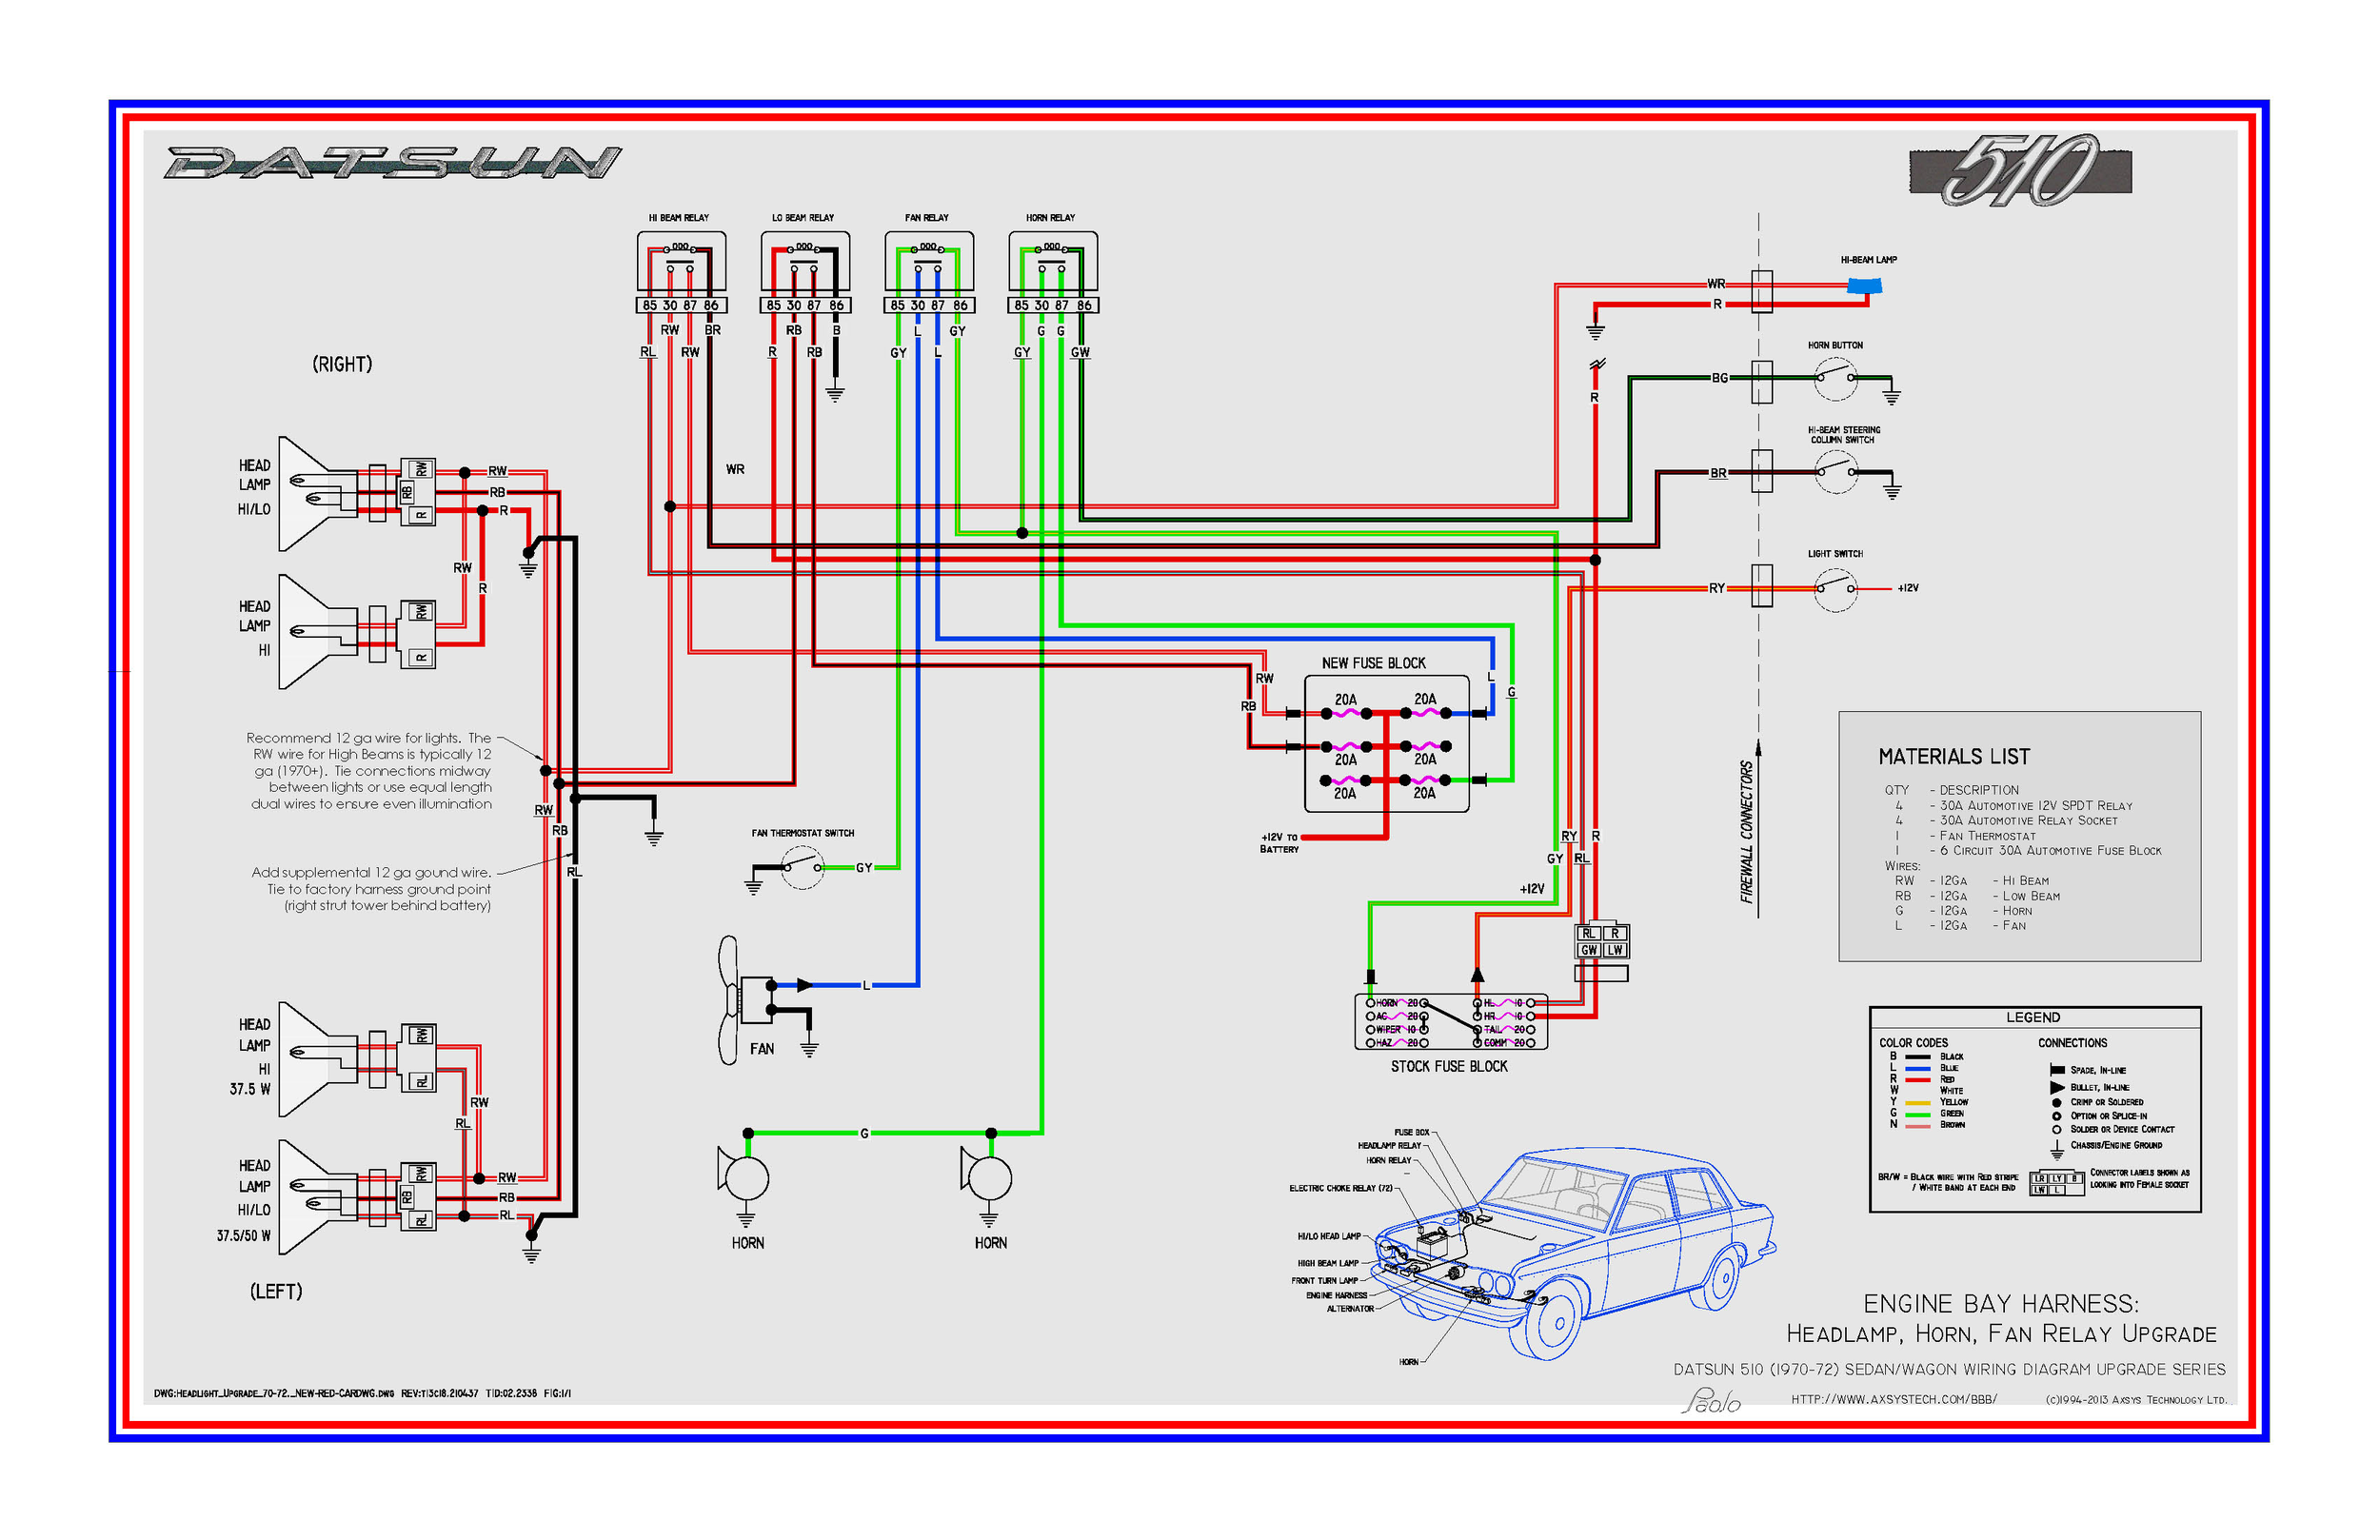 Headlight Wiring Diagram With Relay from datsun510.com